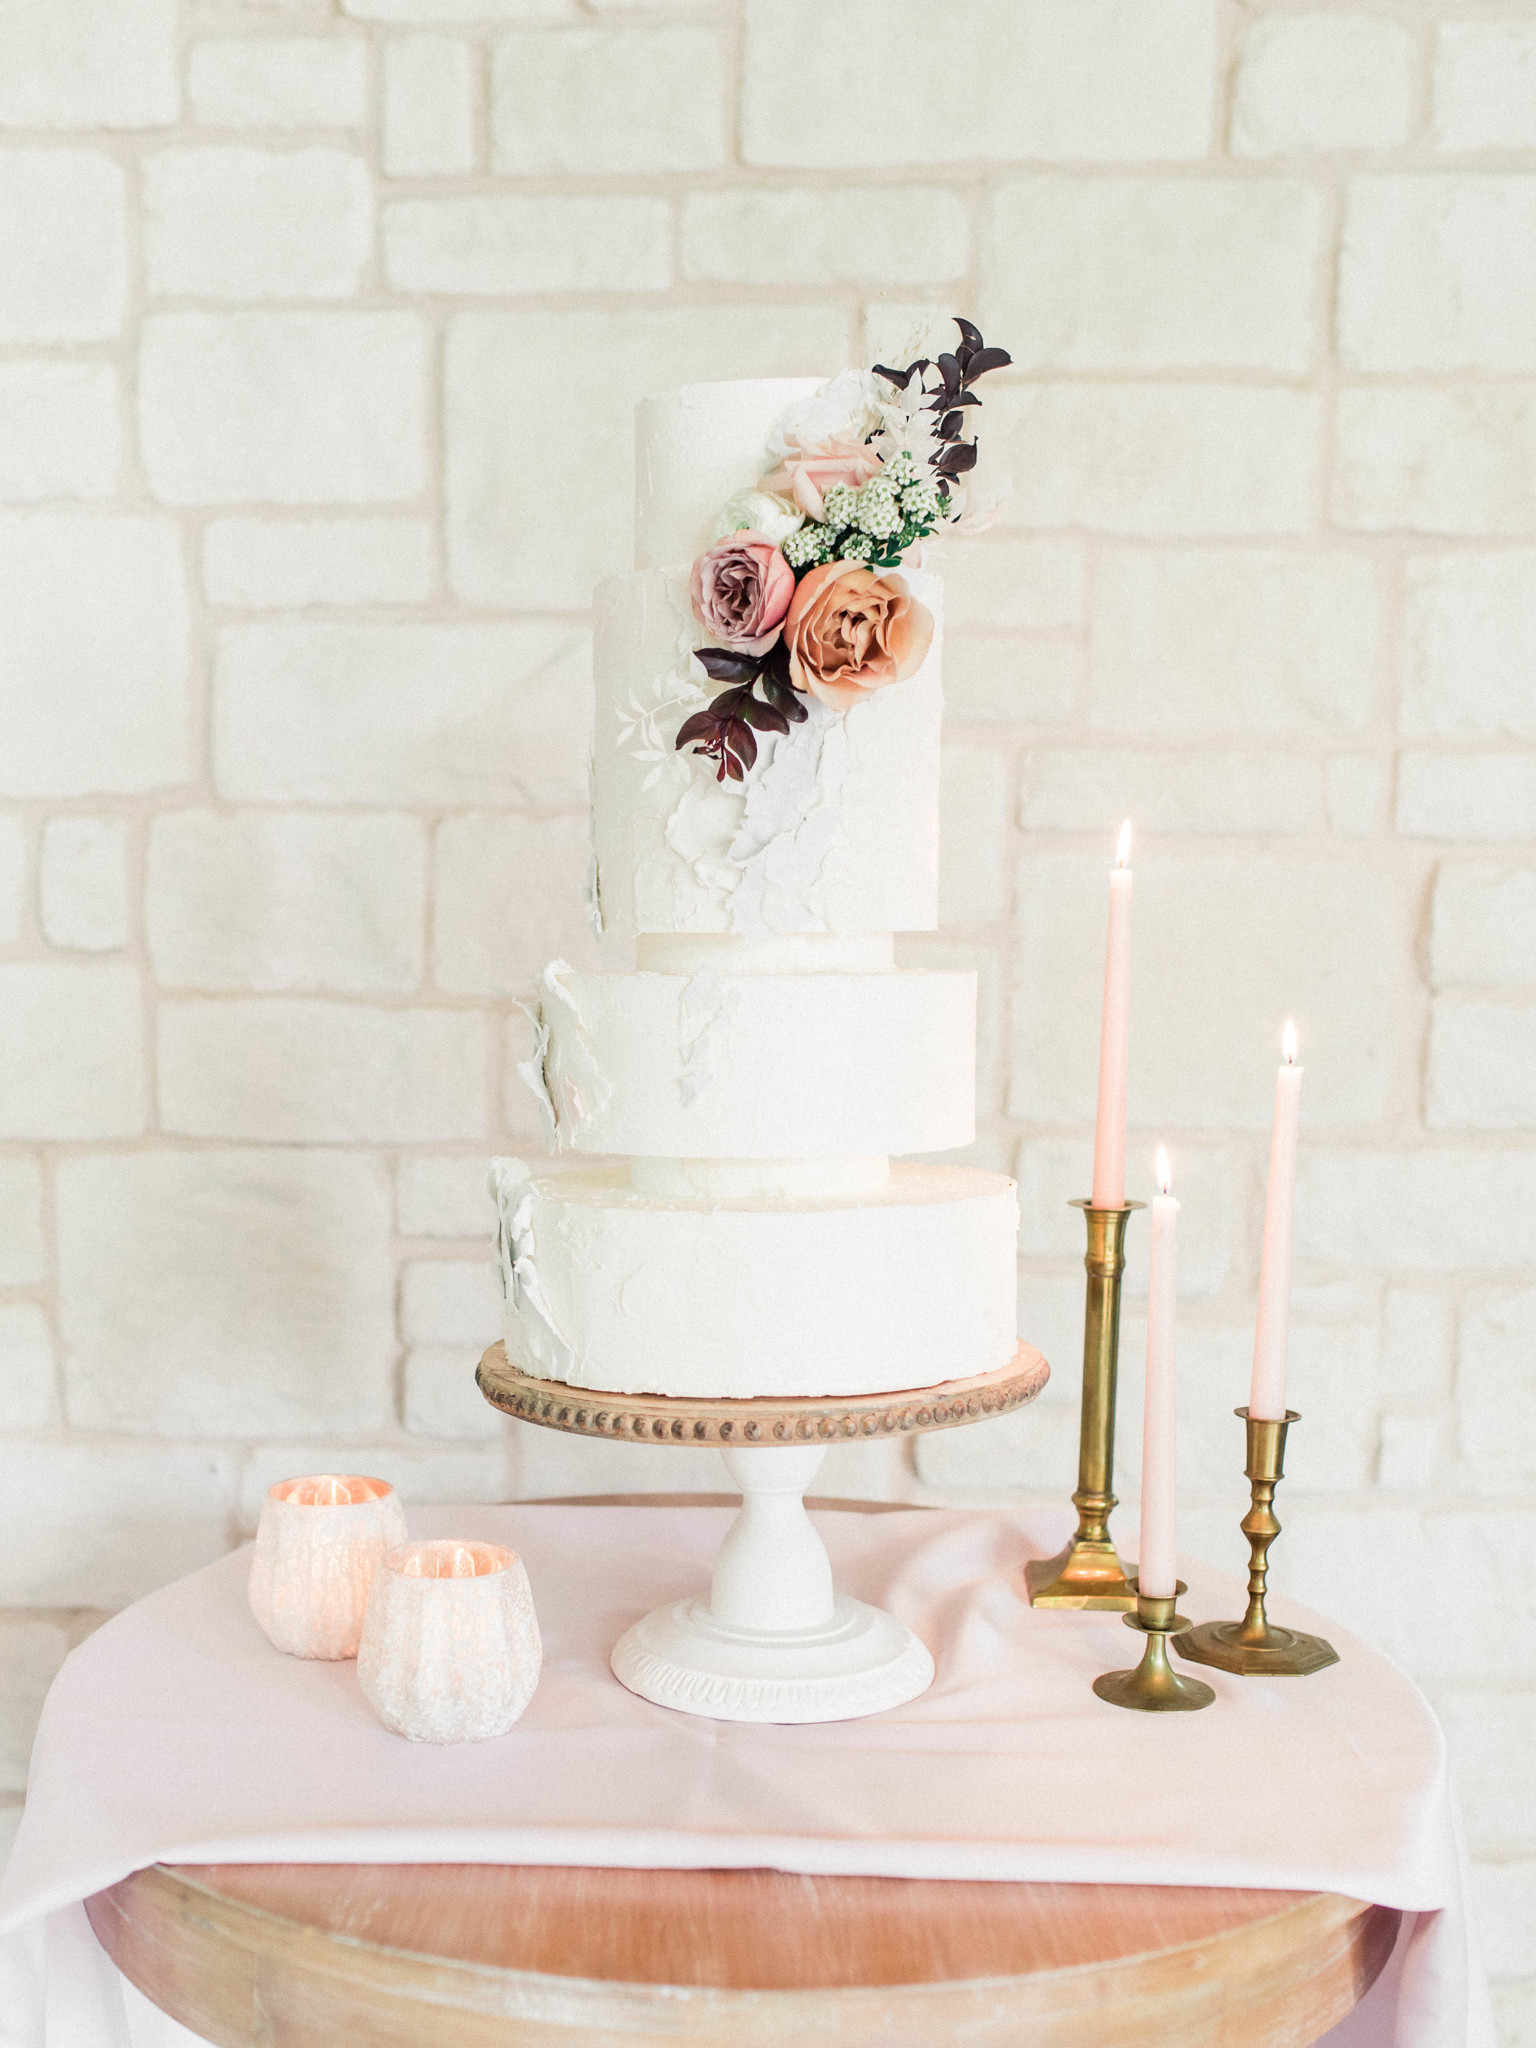 Simple wedding cake design with flowers: Whimsical mauve wedding inspiration on Alexa Kay Events. See more romantic wedding ideas at alexakayevents.com!